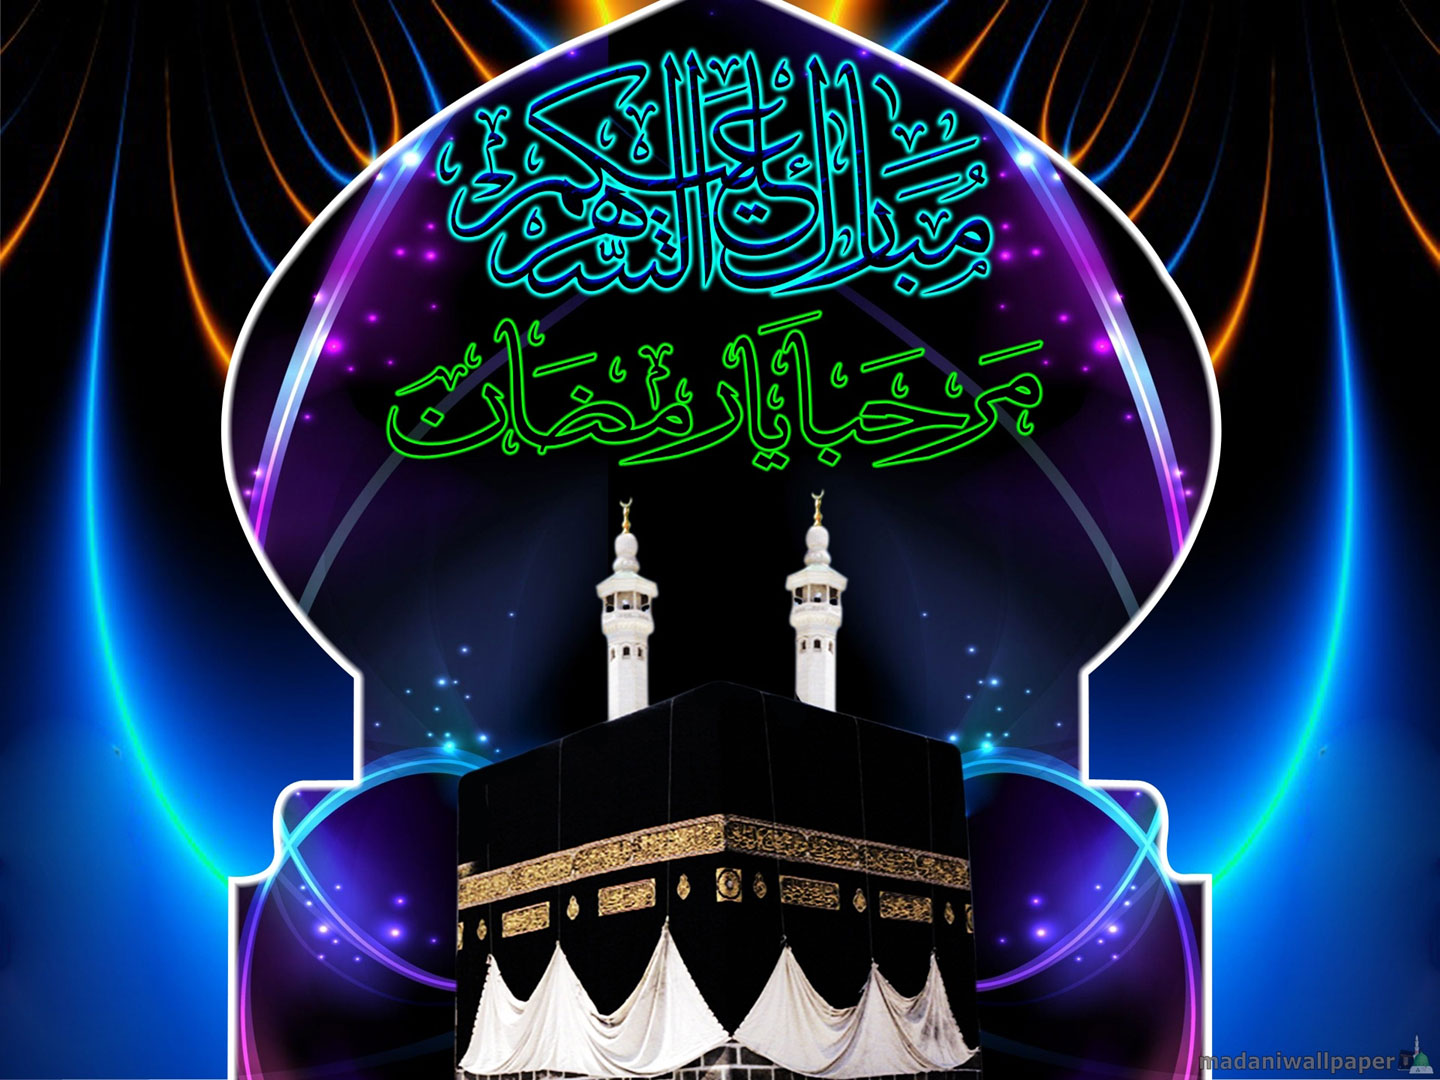 Wallpaper iphone islamic -  Islamic Ramadan Wallpaper